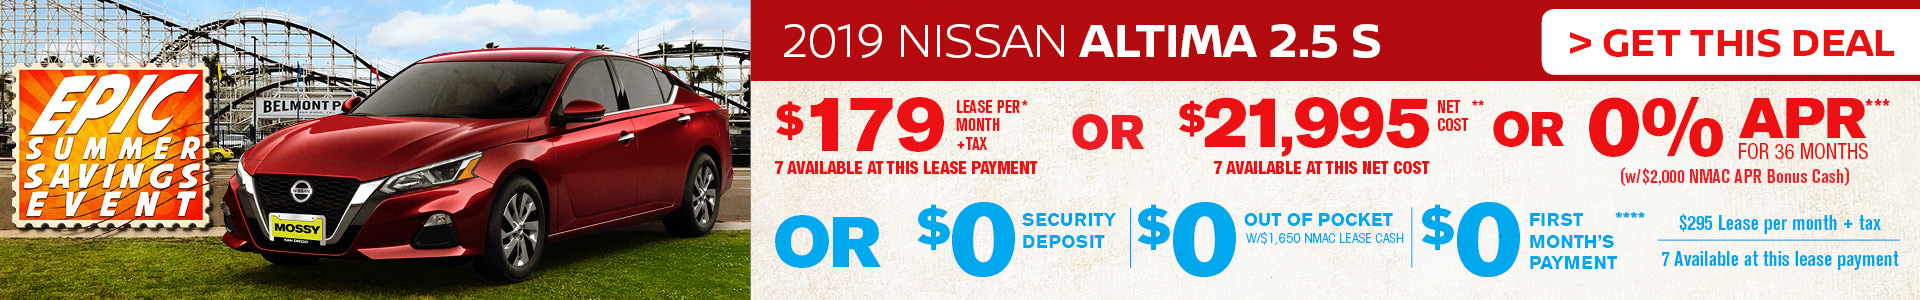 Mossy Nissan - Nissan Altima $179 Lease